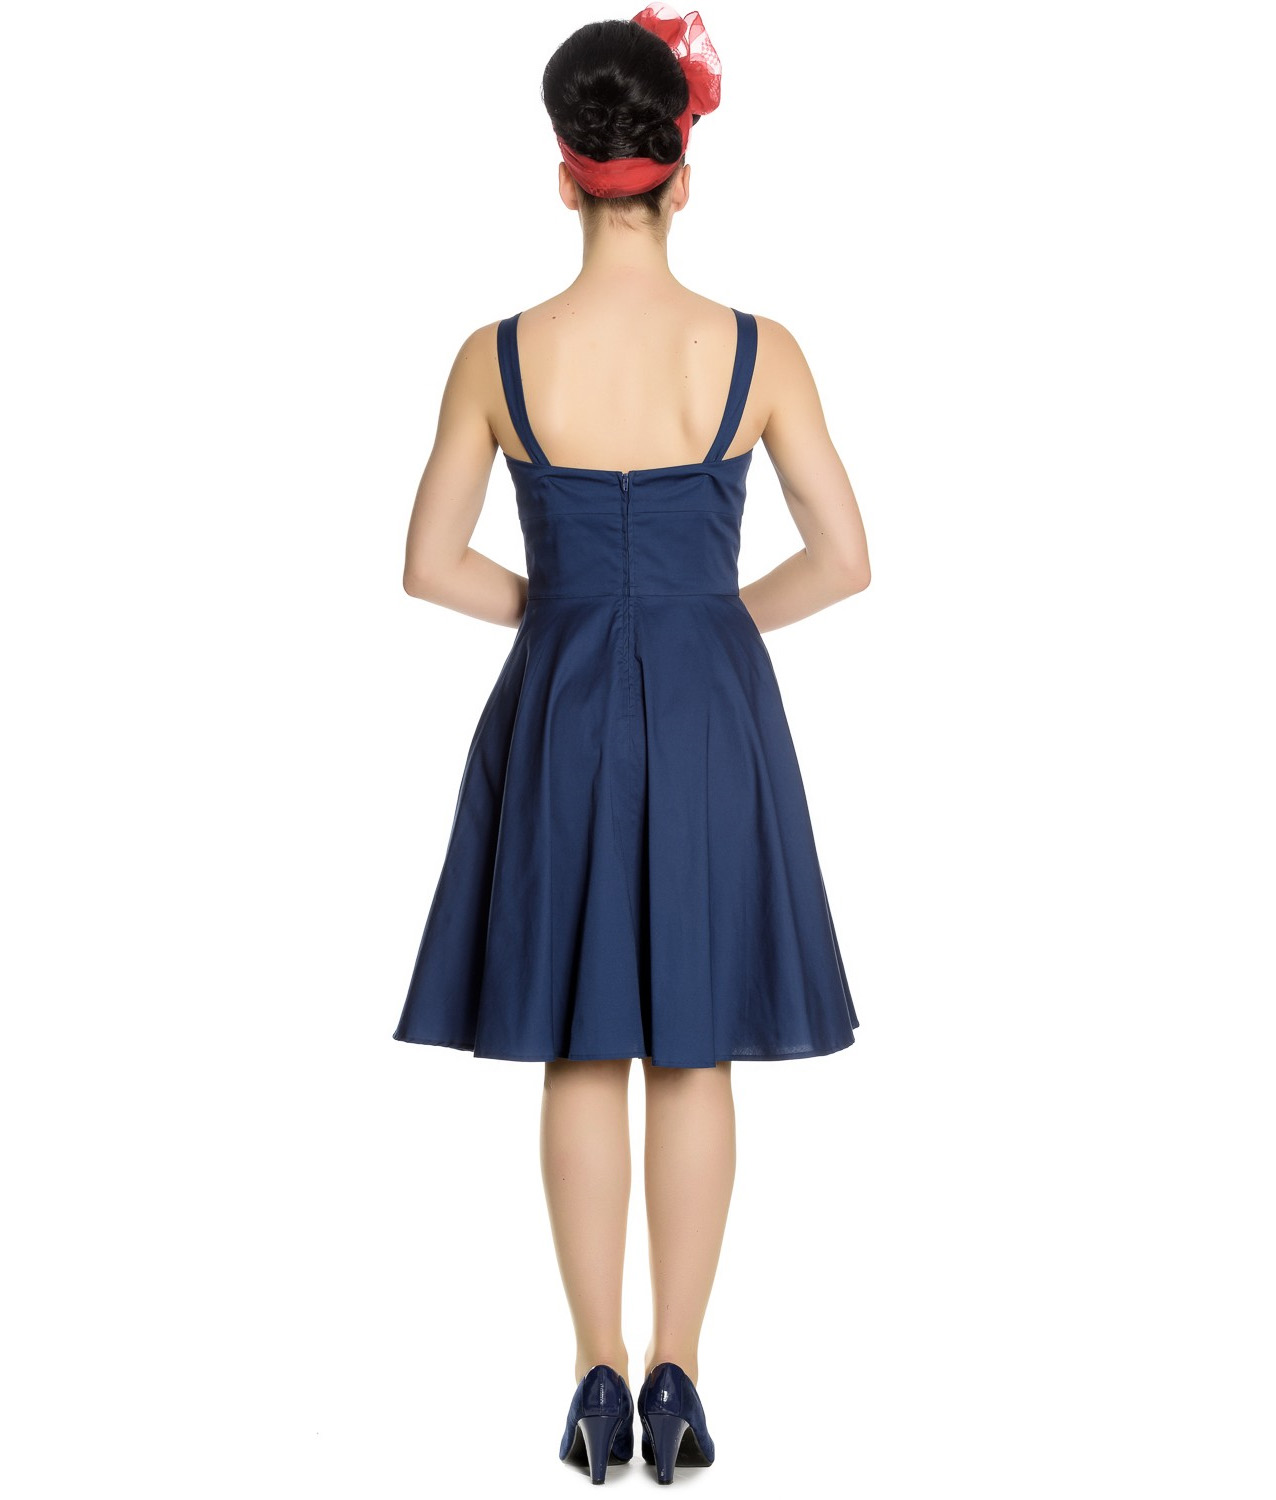 Hell-Bunny-Vintage-50s-Pin-Up-Dress-Navy-Blue-SELA-Nautical-Anchors-All-Sizes thumbnail 17